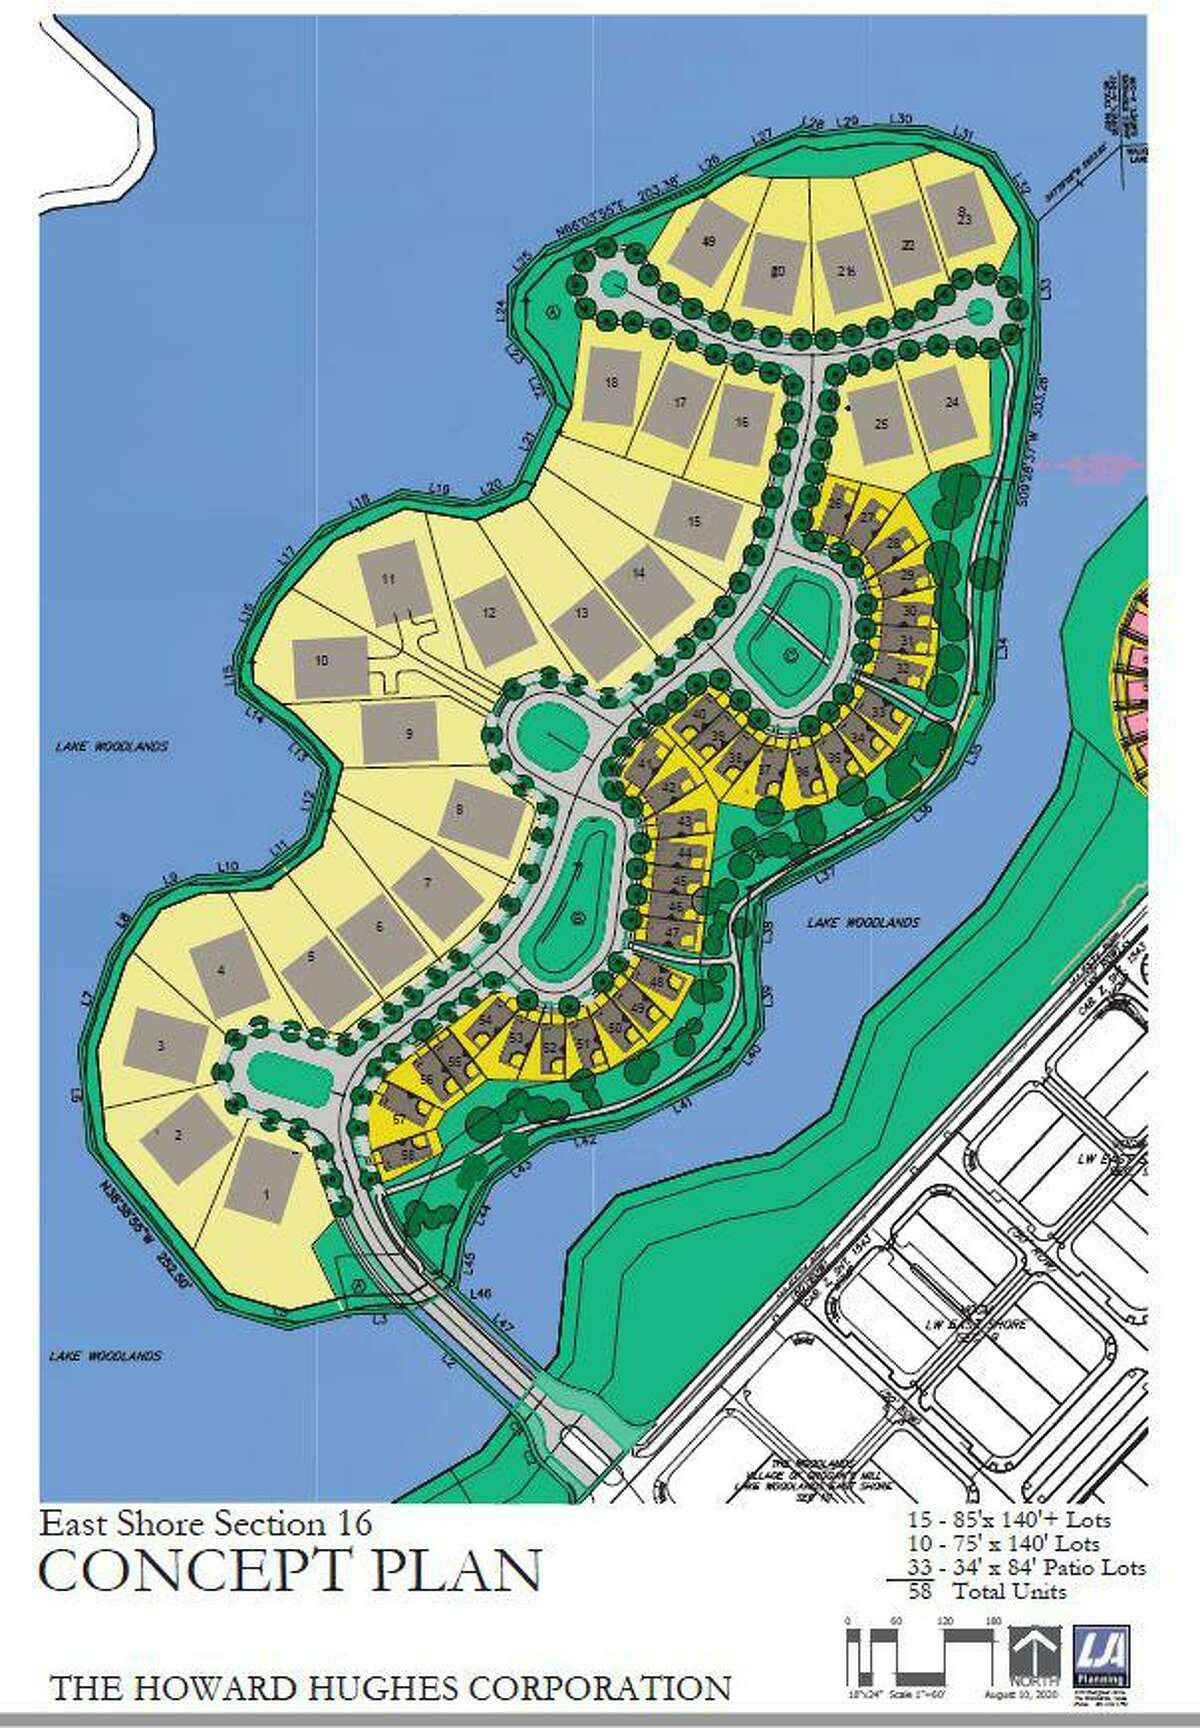 Controversy has erupted in The Woodlands after plans from the Howard Hughes Corp. were unveiled detailing a proposed new development on Mitchell Island in the East Shore area of the township. The island, currently empty, was set to have 19 mega mansions built on it. Now, Howard Hughes officials want to build 58 different homes. Plans are on hold, but local residents opposed to the project will have their concerns officially heard during a Nov. 4 meeting of the township Development Standards Committee.